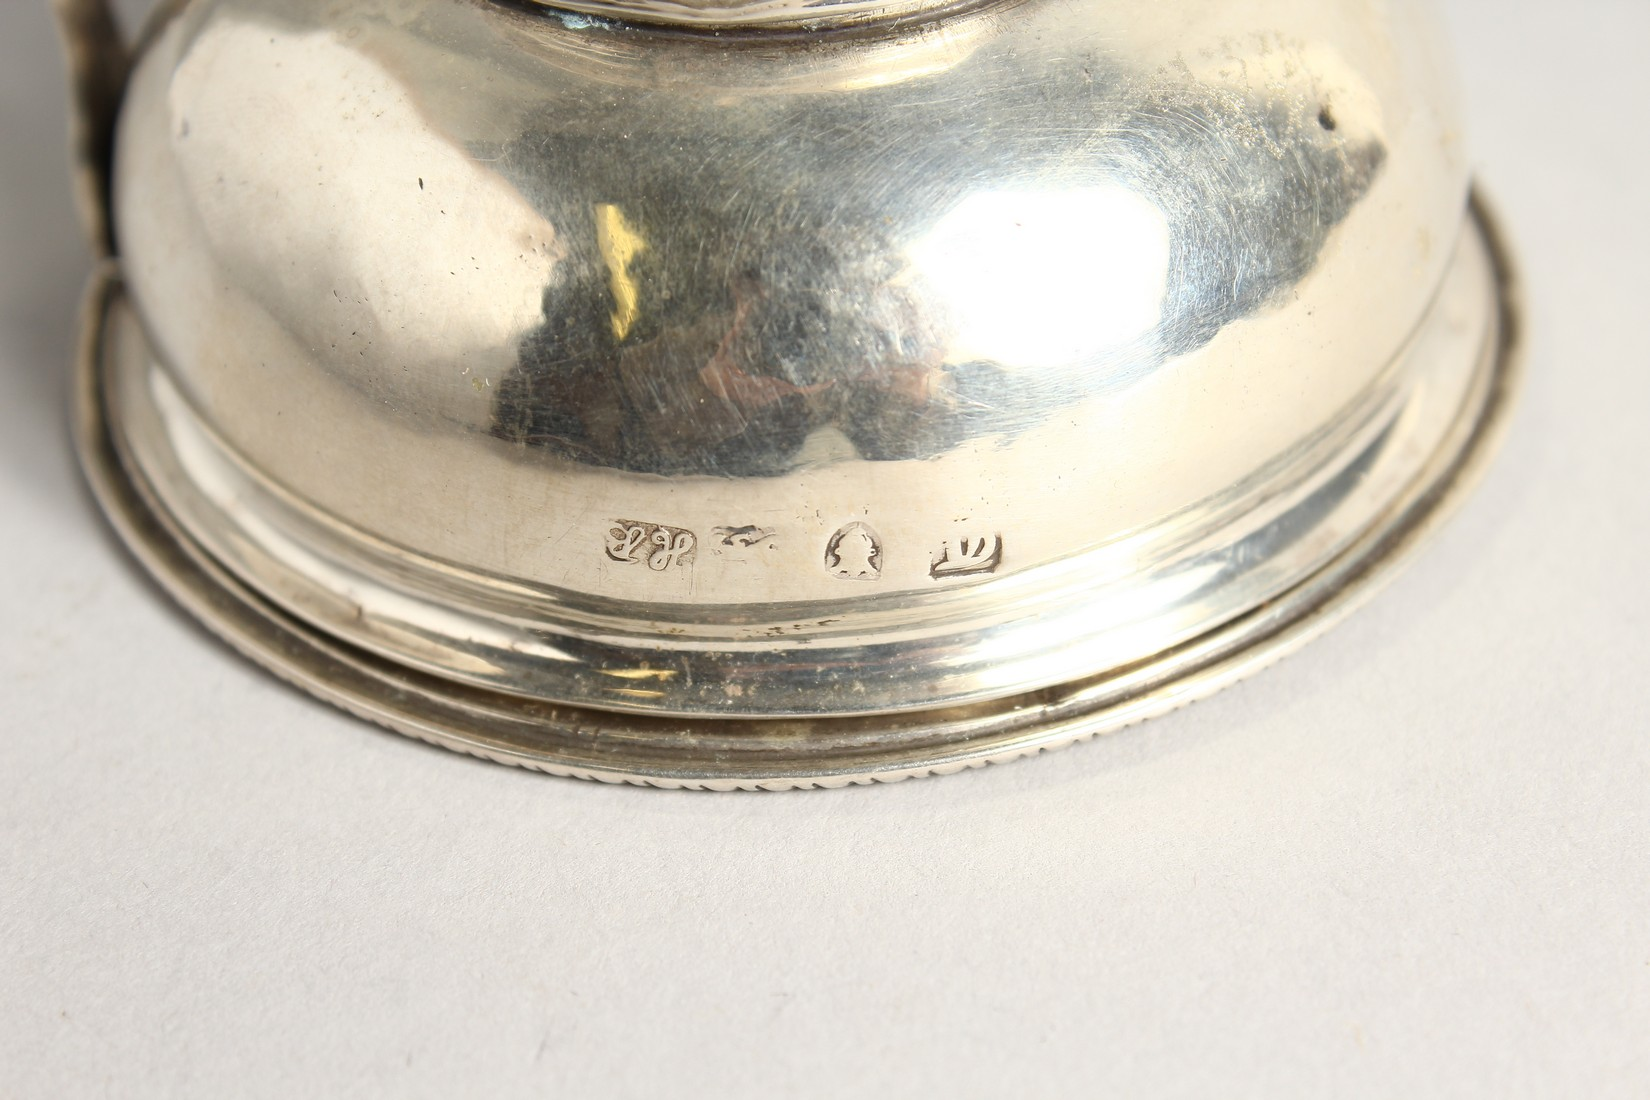 A GEORGE III SILVER WINE FUNNEL by Hester Bateman, London, 1774. - Image 4 of 5